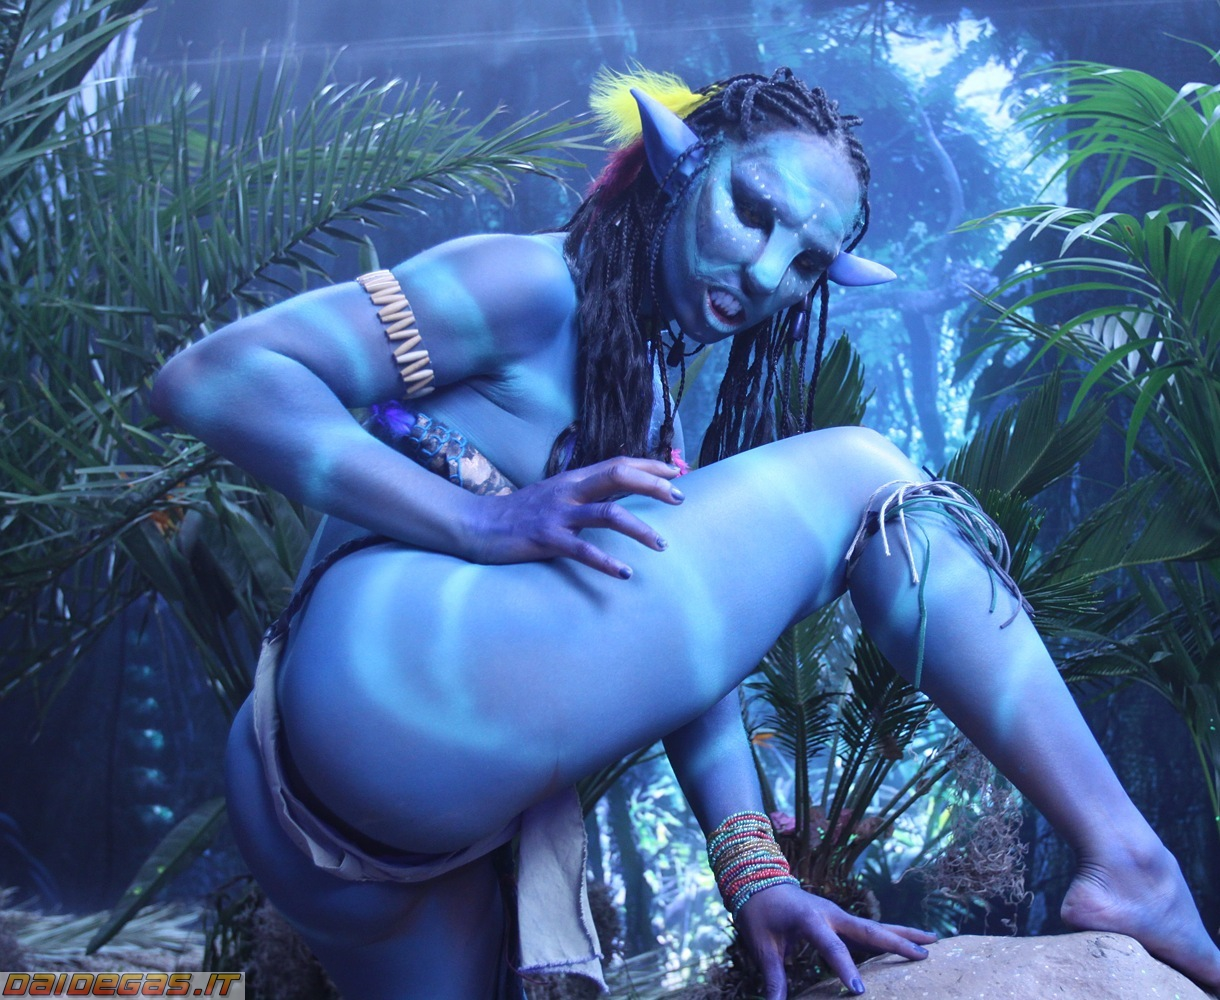 from Ryan naked girls from avatar the movie